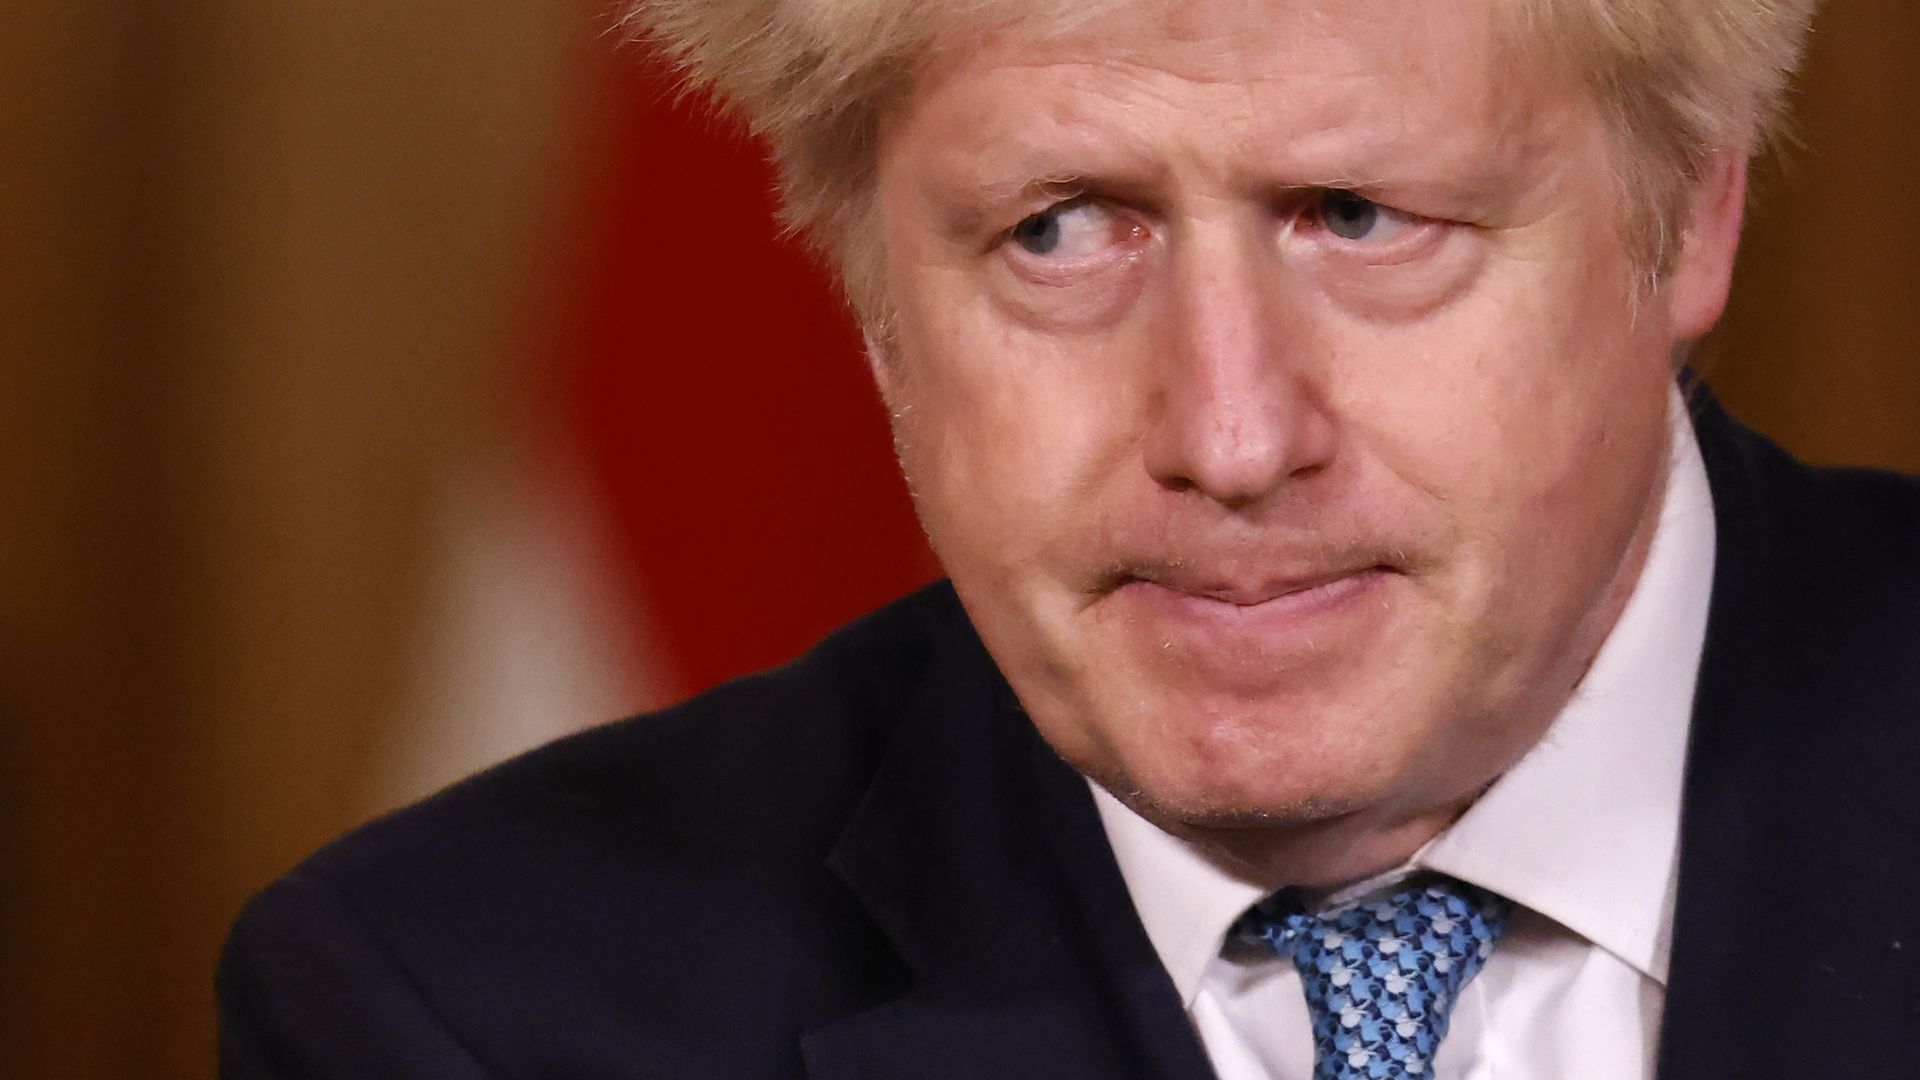 Prime minister Boris Johnson during a media briefing in Downing Street, London, on Covid-19. - Credit: PA